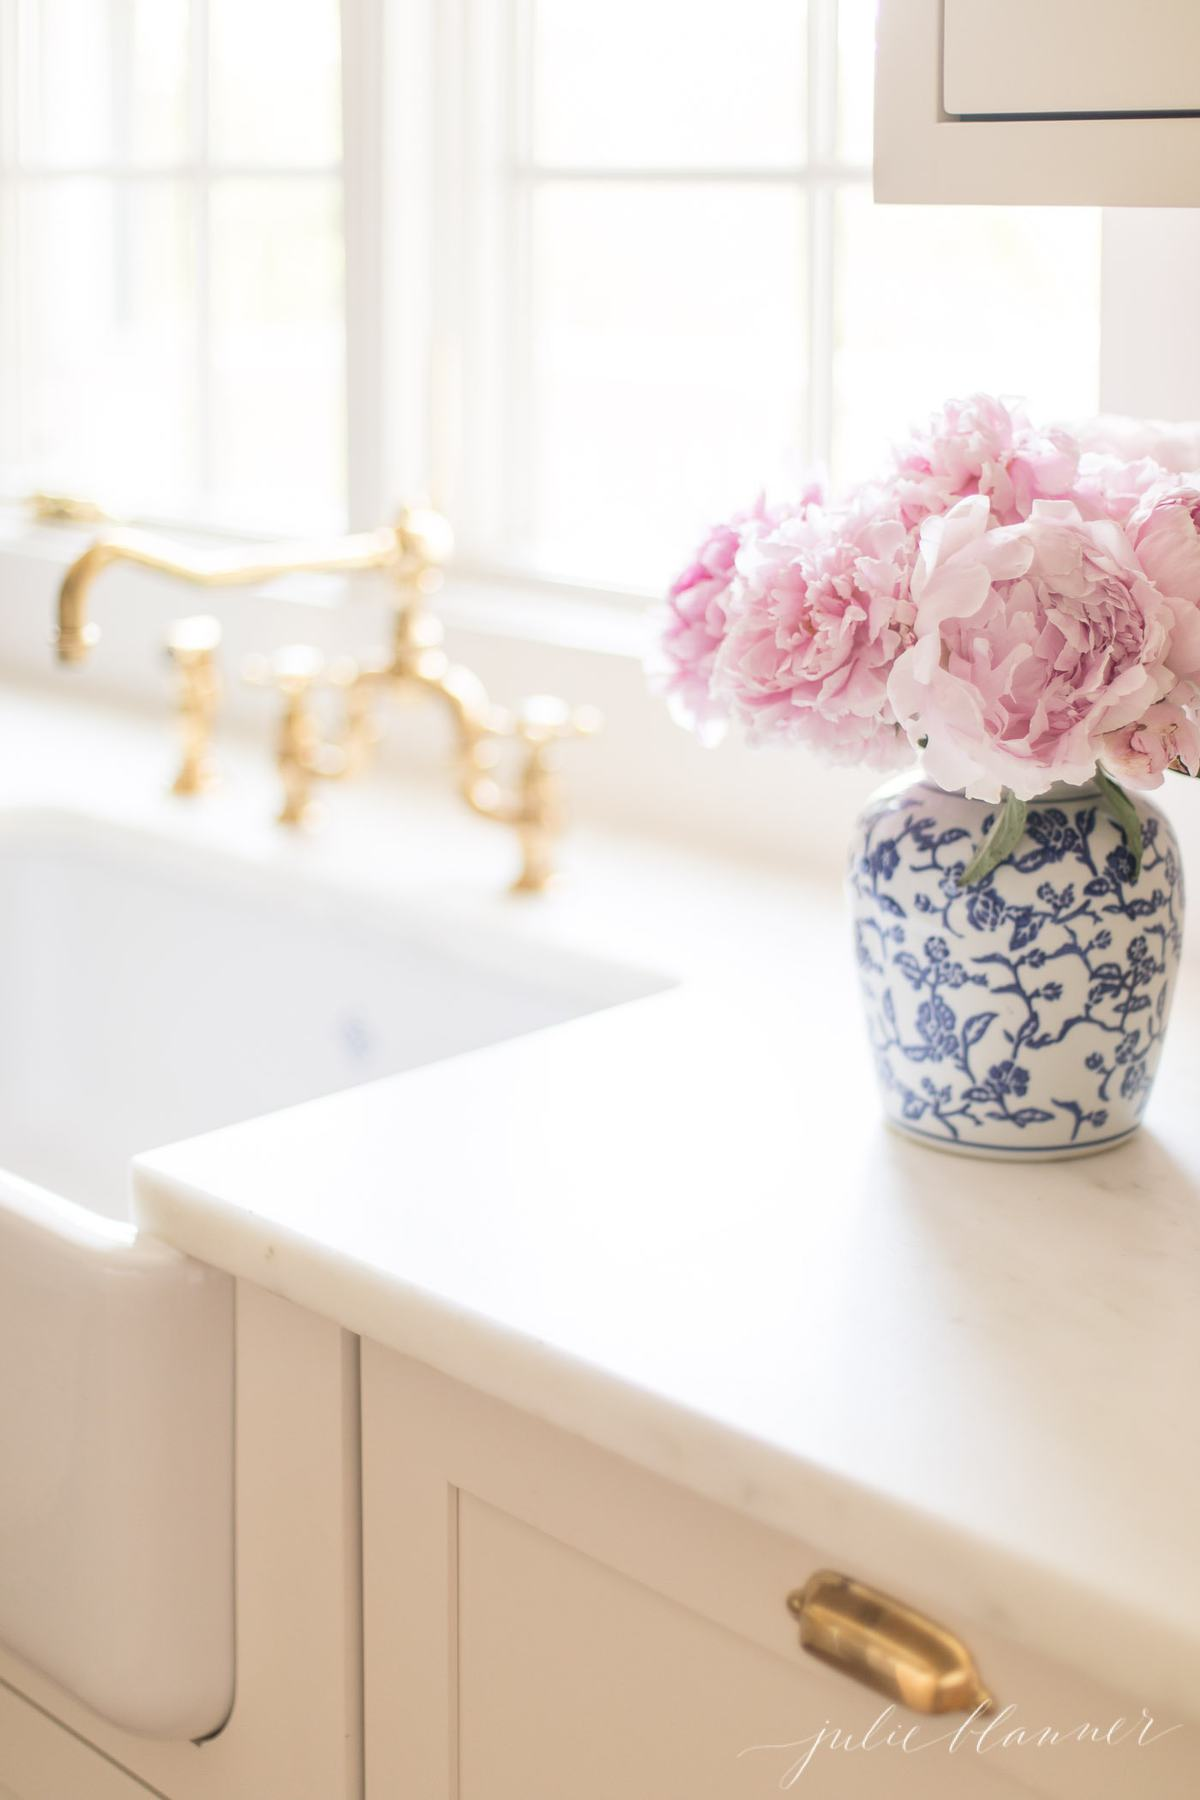 A blue and white porcelain vase of peonies by the kitchen sink.